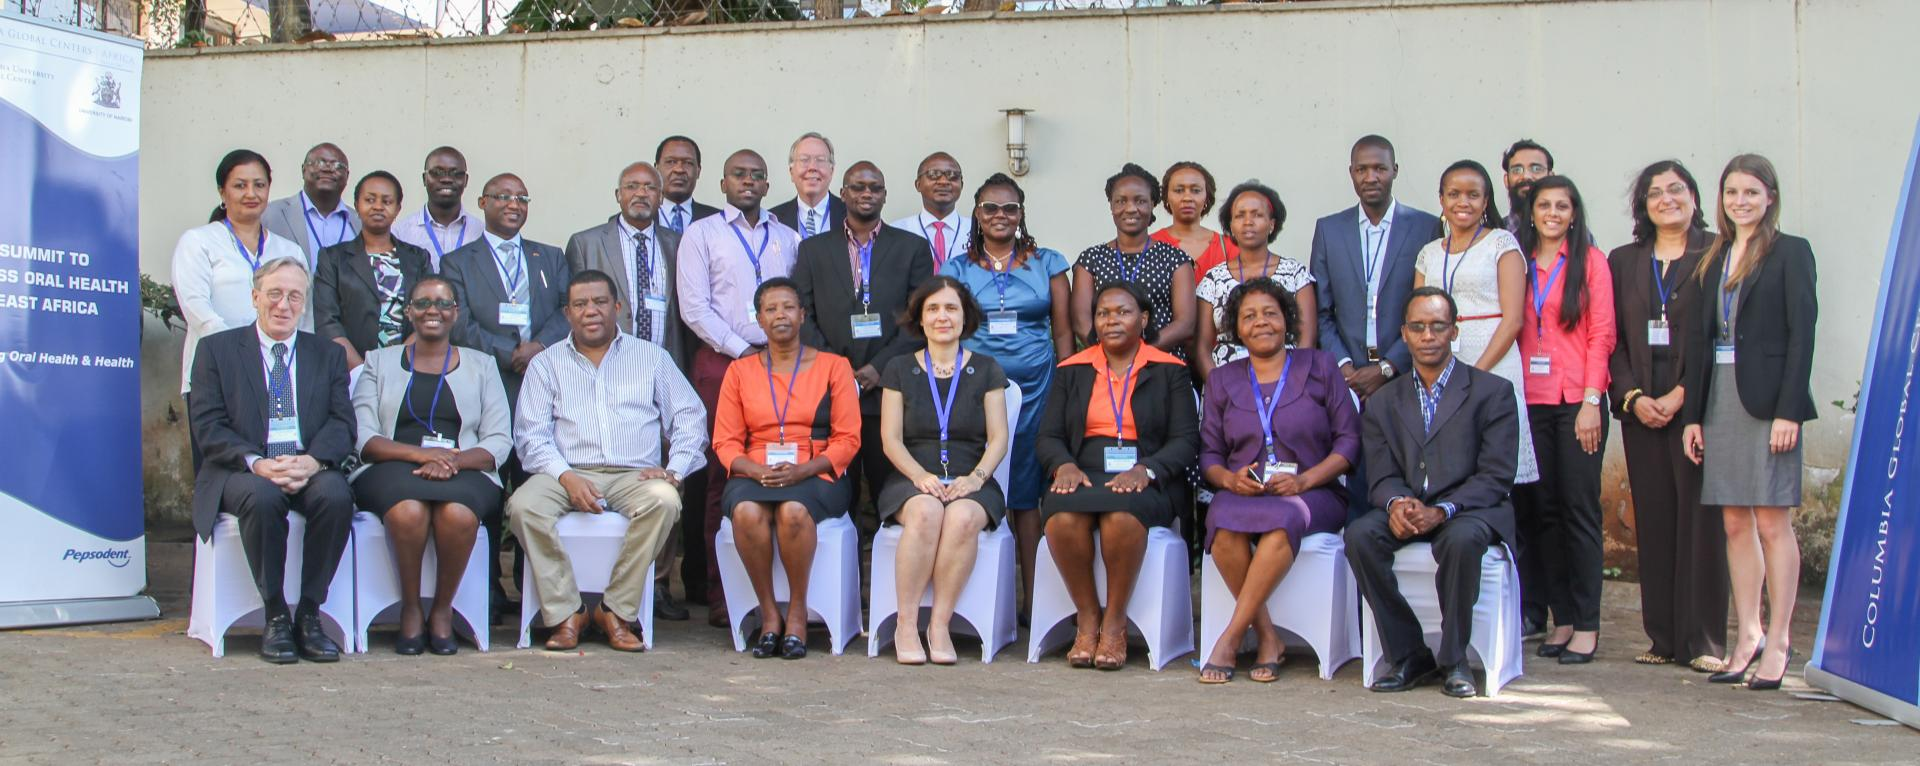 Nairobi Oral Health Summit 2015